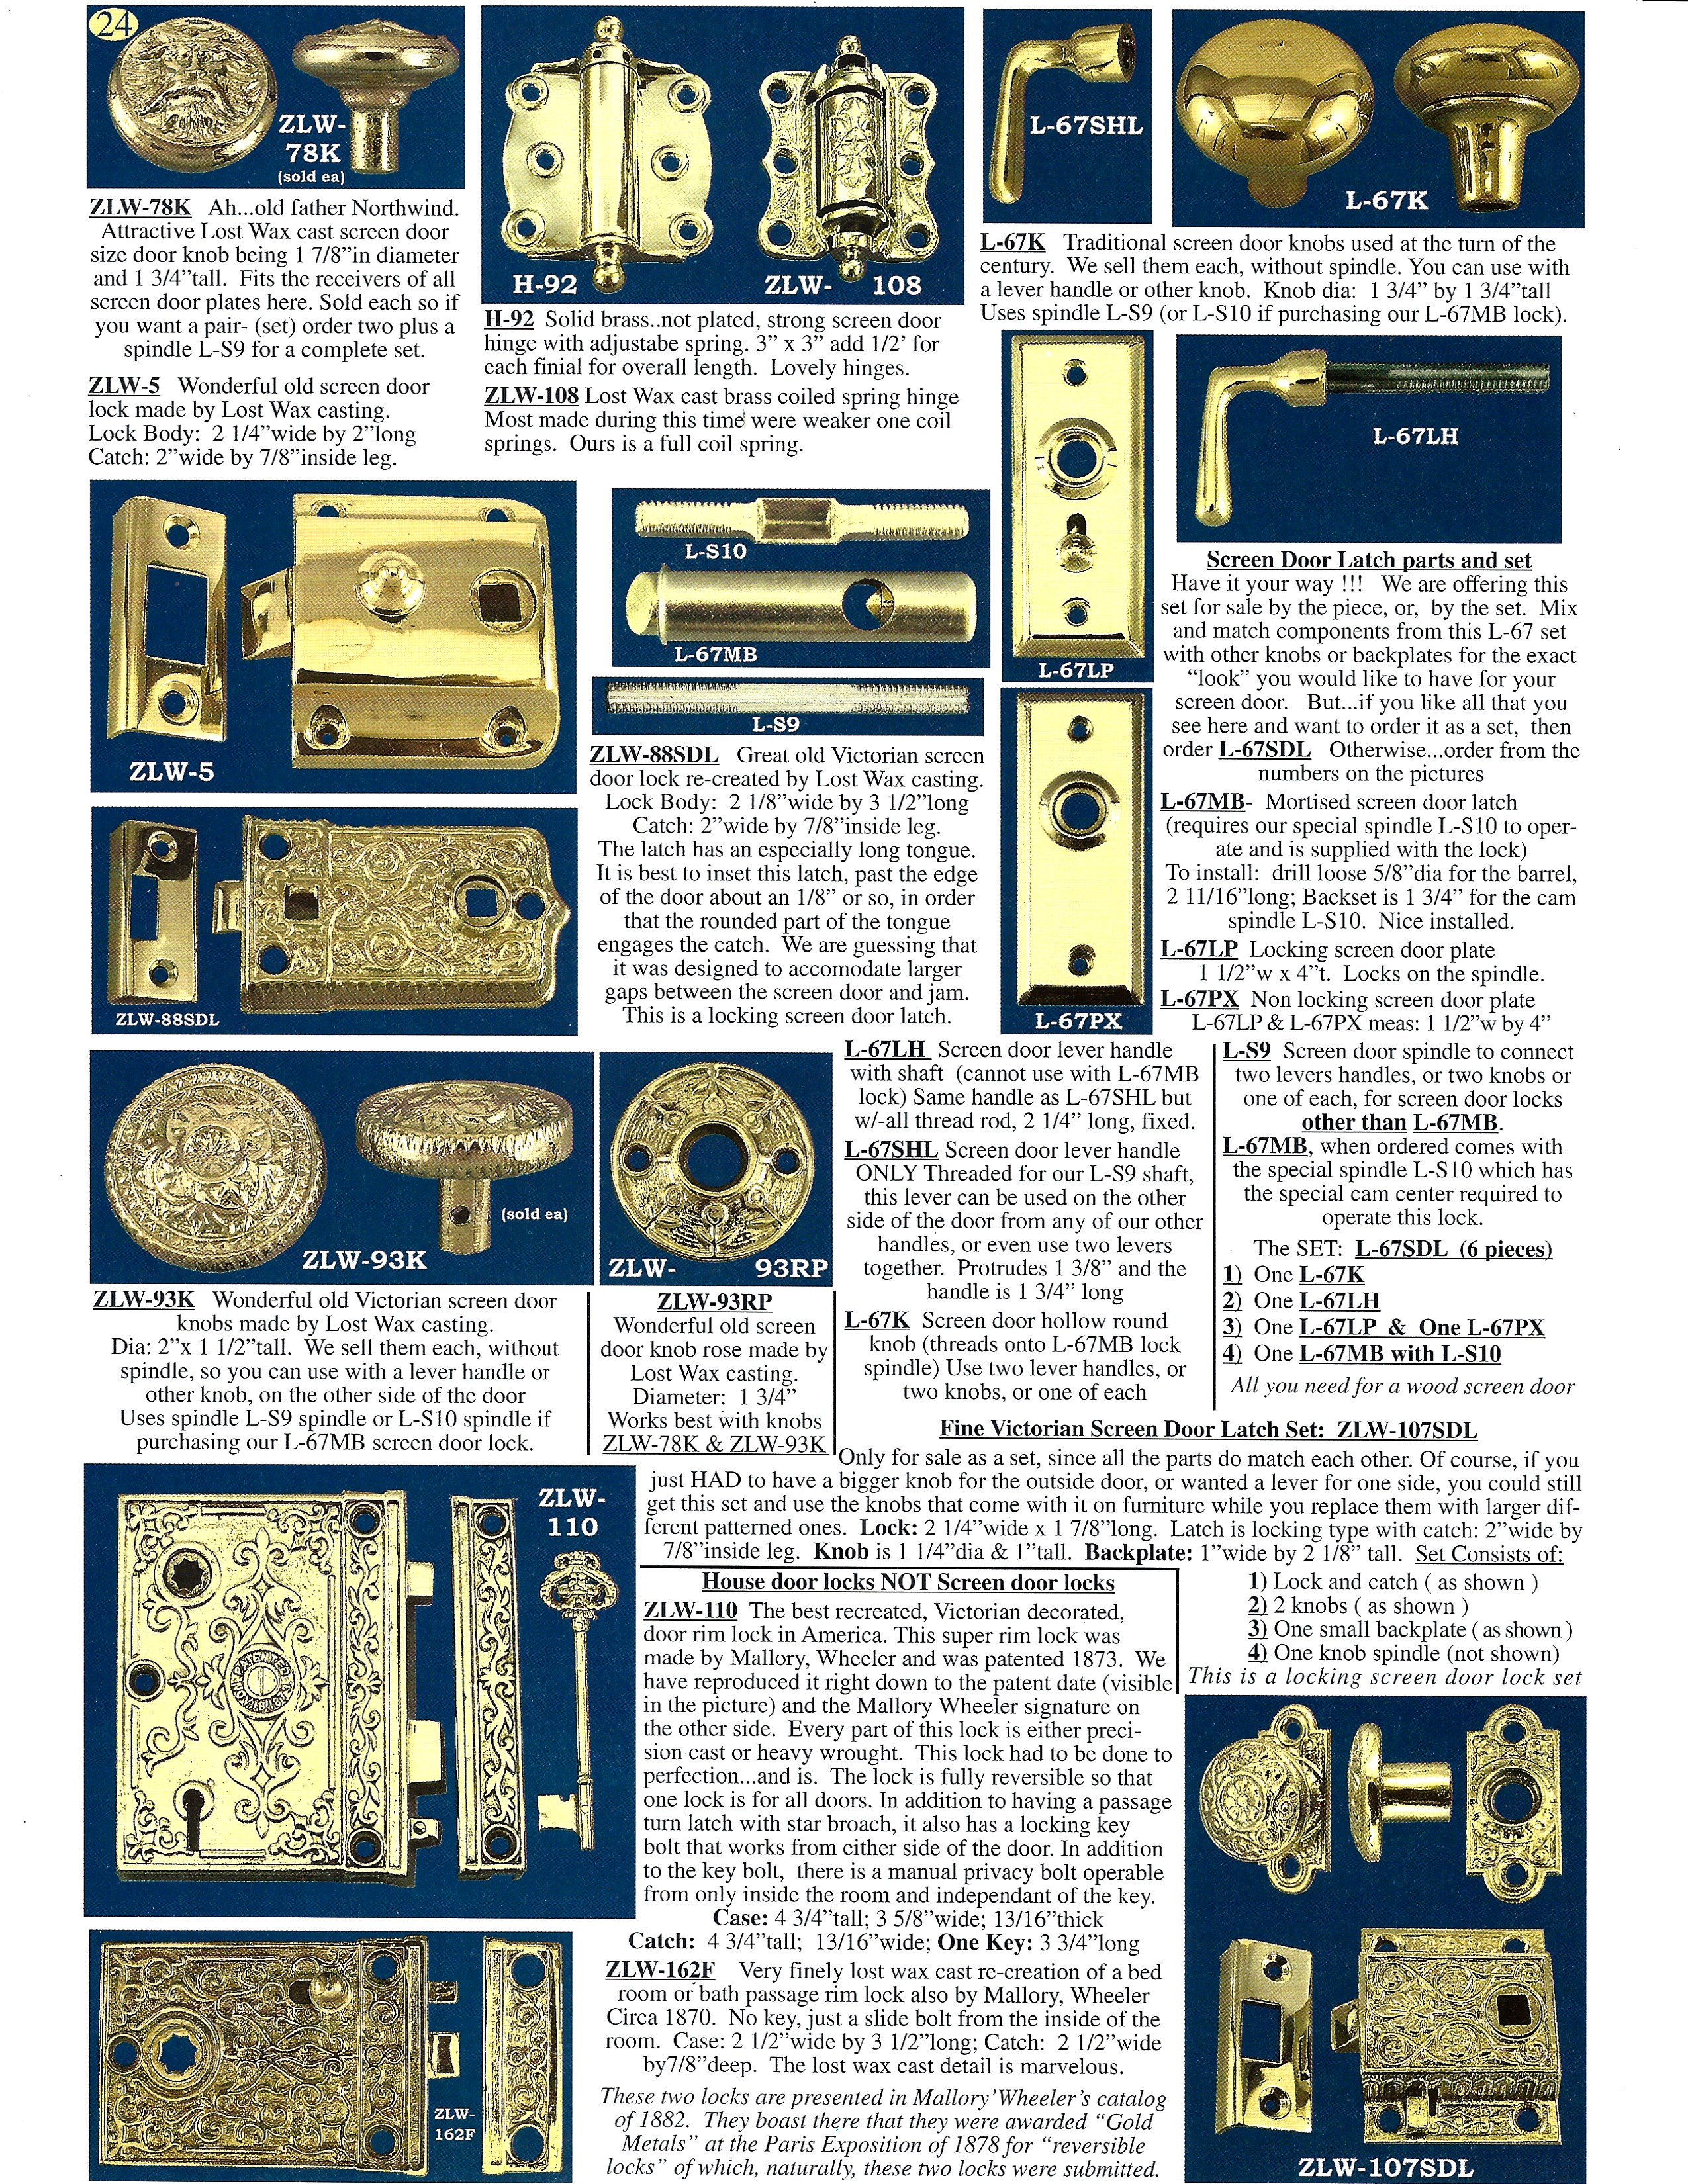 Catalog page 24